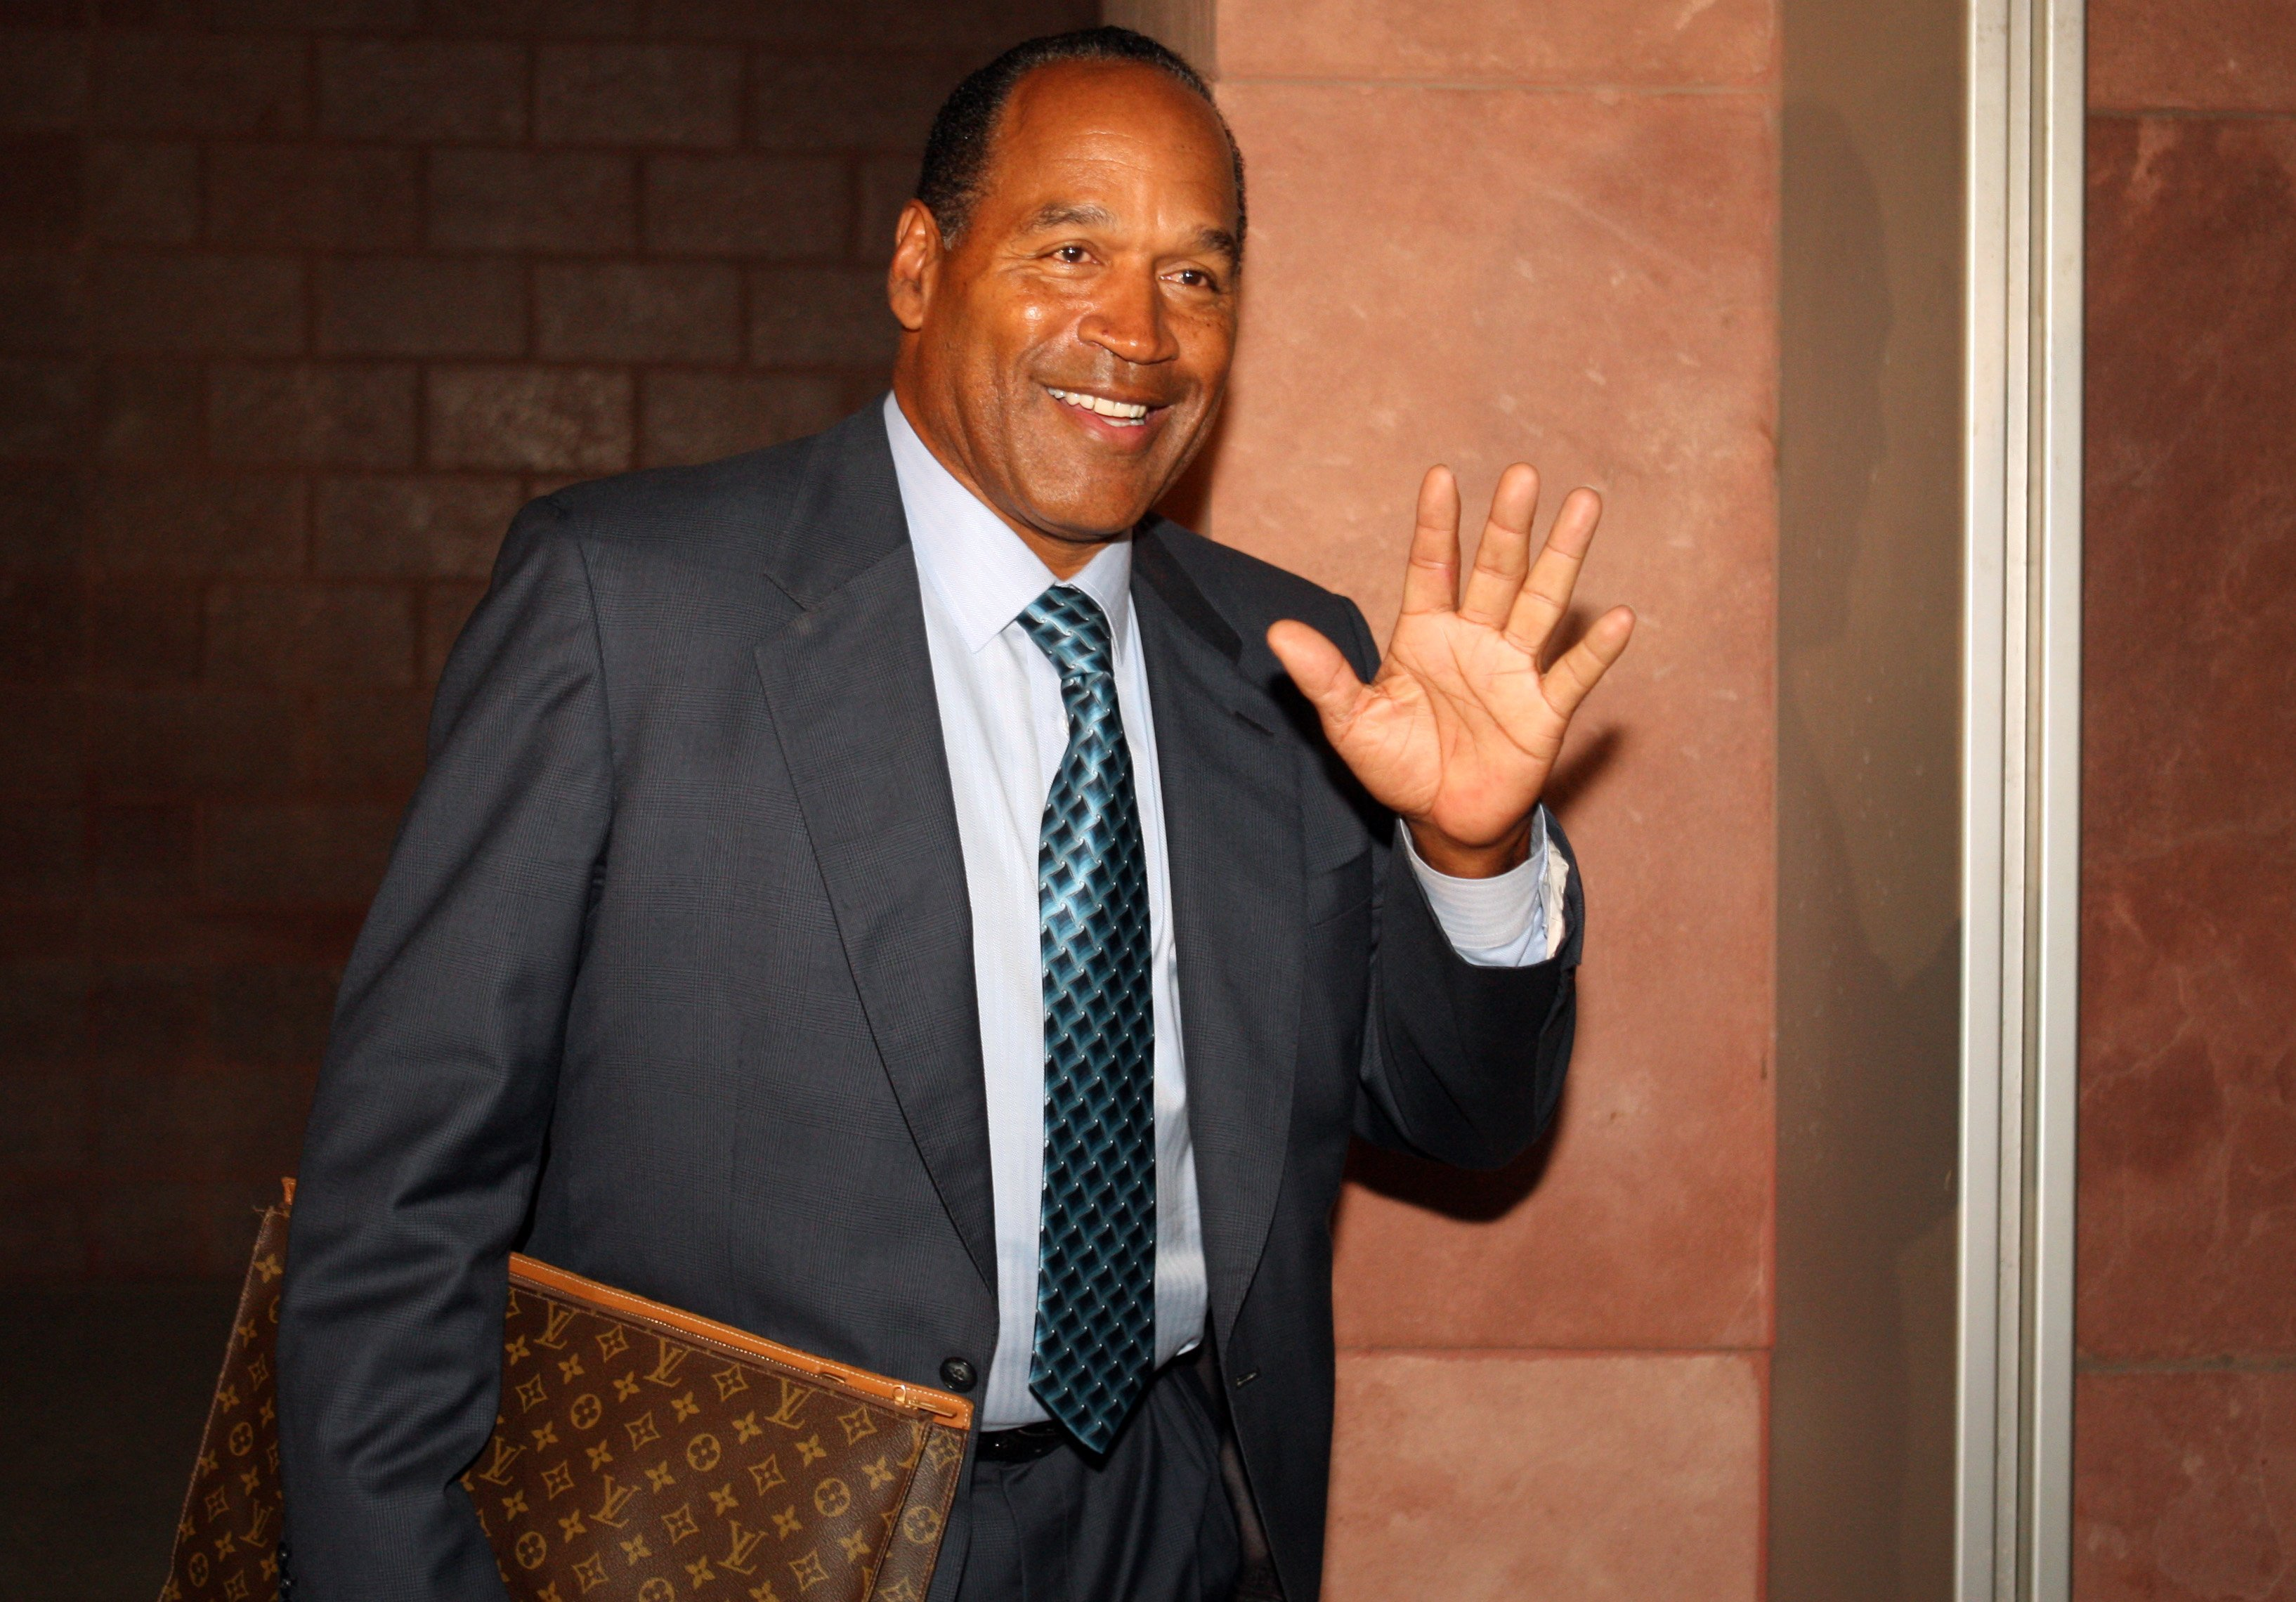 OJ Simpson waves at the press as he leaves the court after the closing arguments during his 2008 trial for felony kidnapping and armed robbery. | Photo: Getty Images